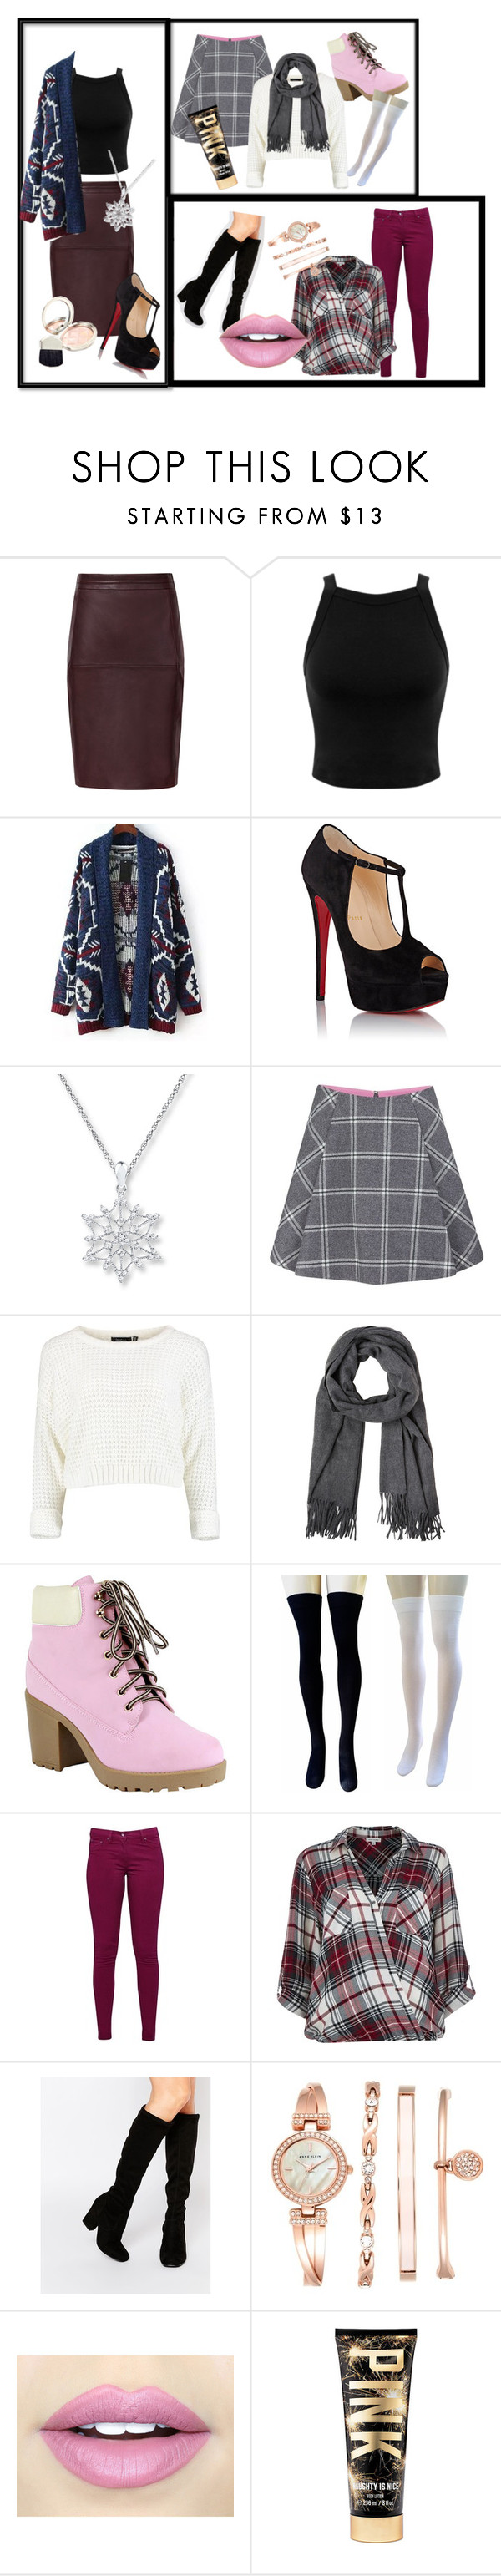 """Holiday"" by gabrielledimura ❤ liked on Polyvore featuring Miss Selfridge, Relaxfeel, Christian Louboutin, Paul & Joe Sister, Reneeze, Great Plains, River Island, Faith, Anne Klein and Fiebiger"